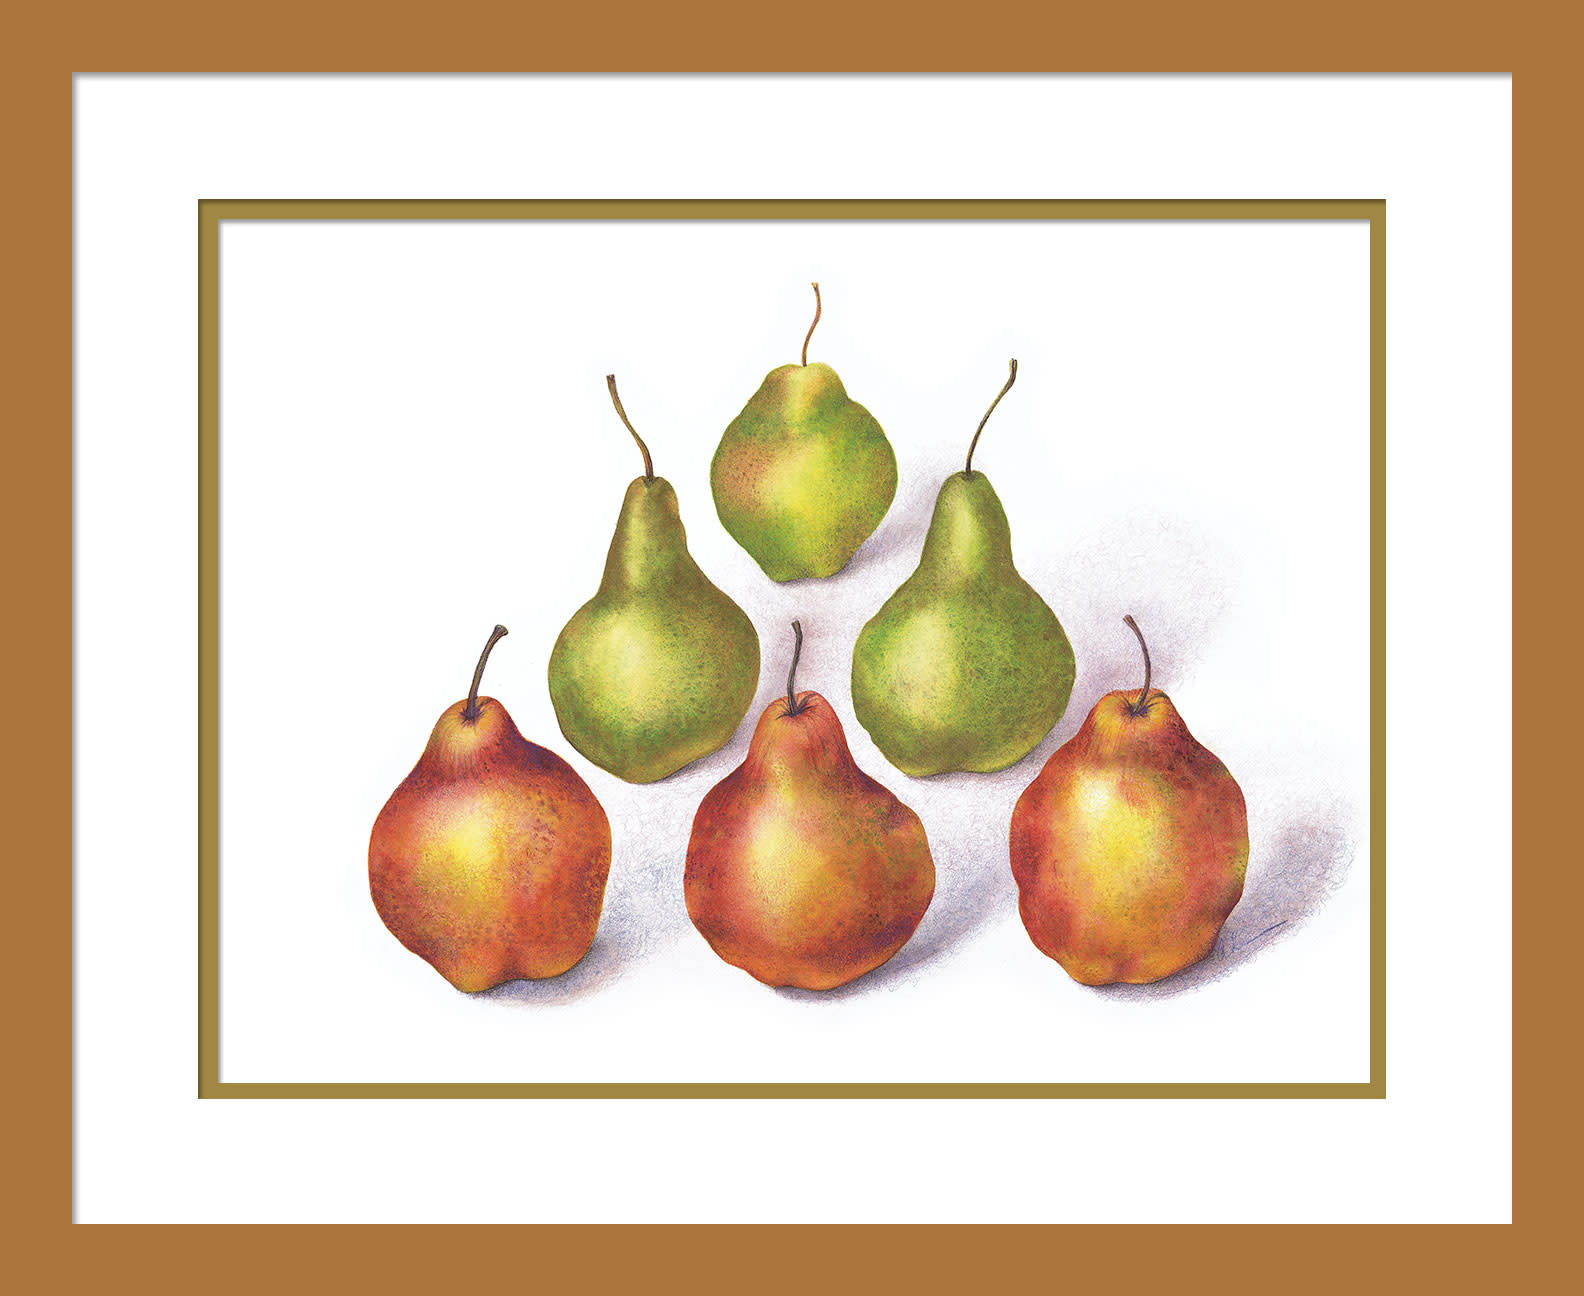 030503 pyramid pears  1 12x16 matted in 16x20 frame oq7bnh